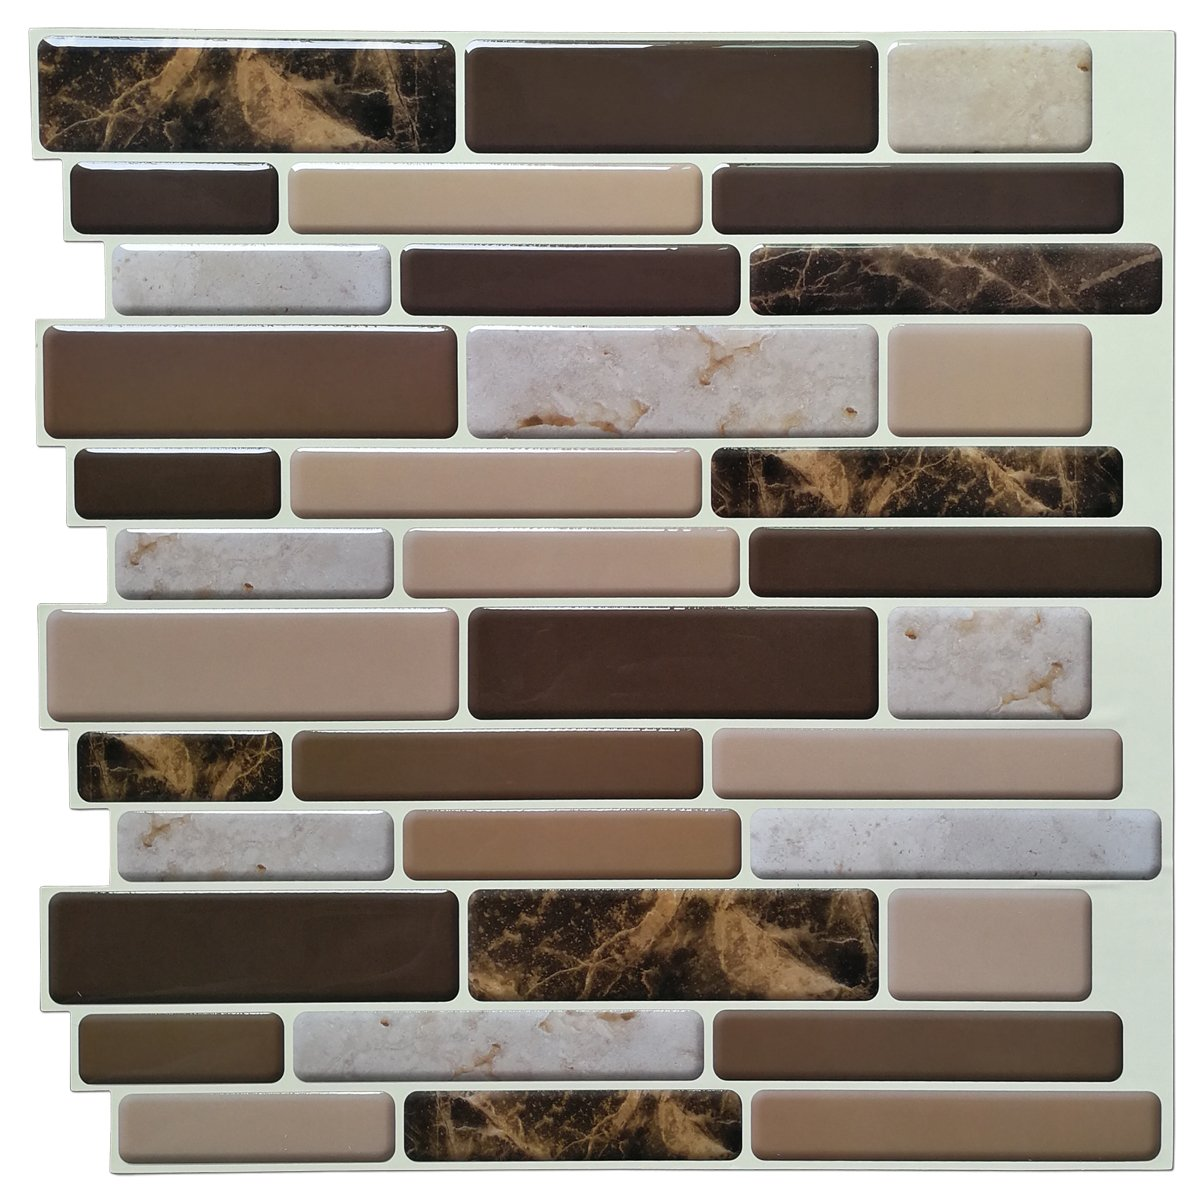 Art3d Kitchen Backsplash Tiles Peel and Stick Wall Stickers, 12''x12'', (10 Sheets) by Art3d